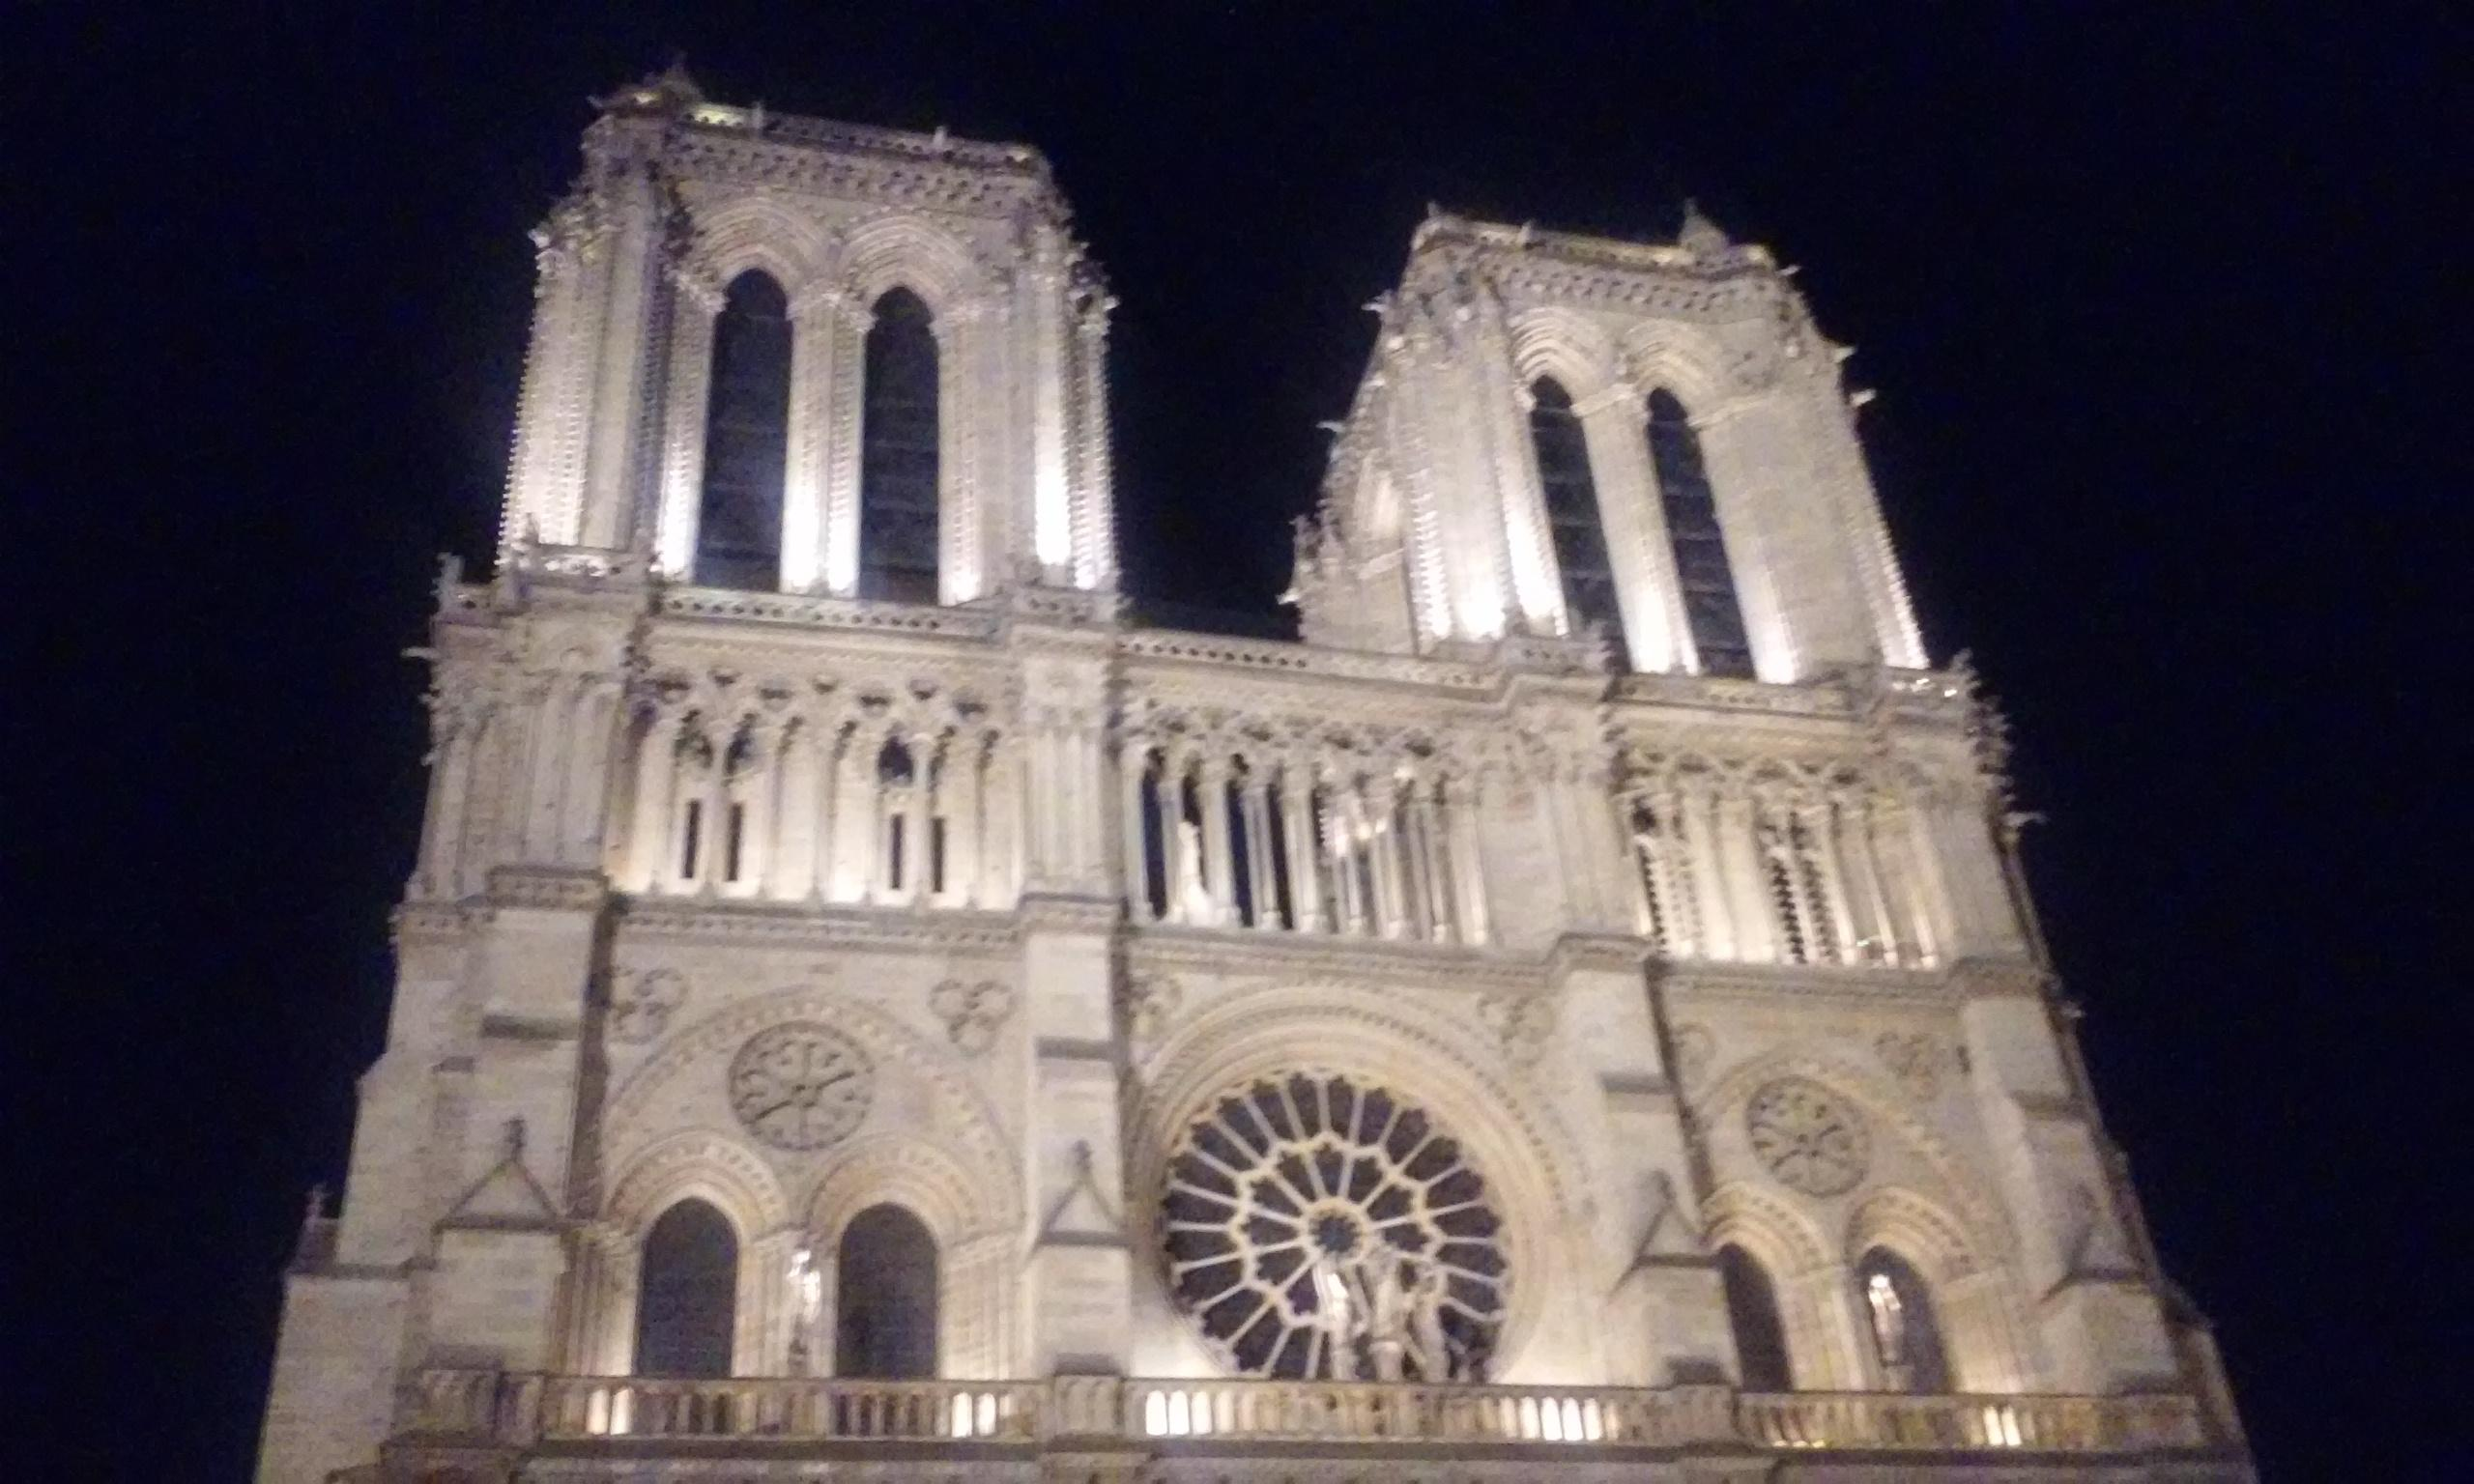 Notre Dame Paris at night